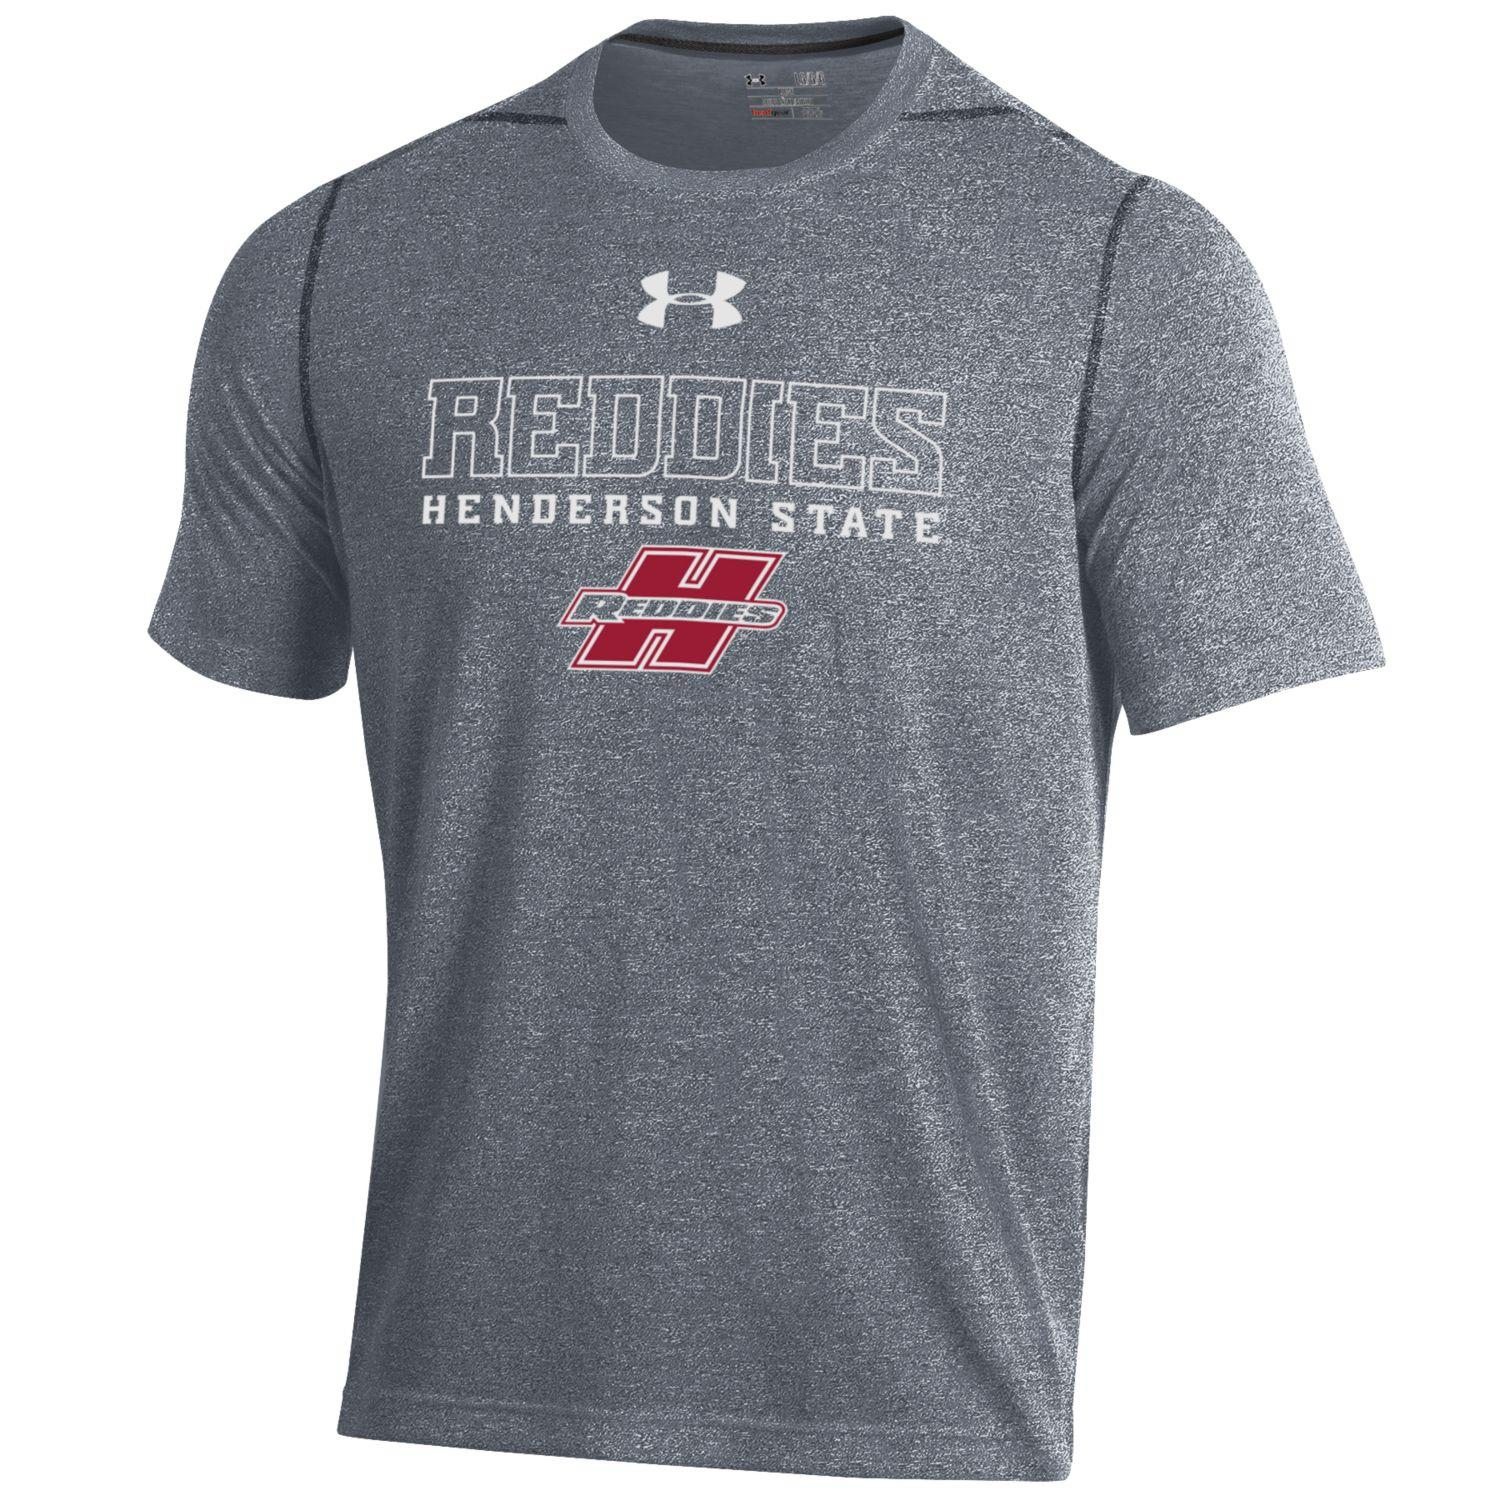 Under Armour Threadborne Shirt